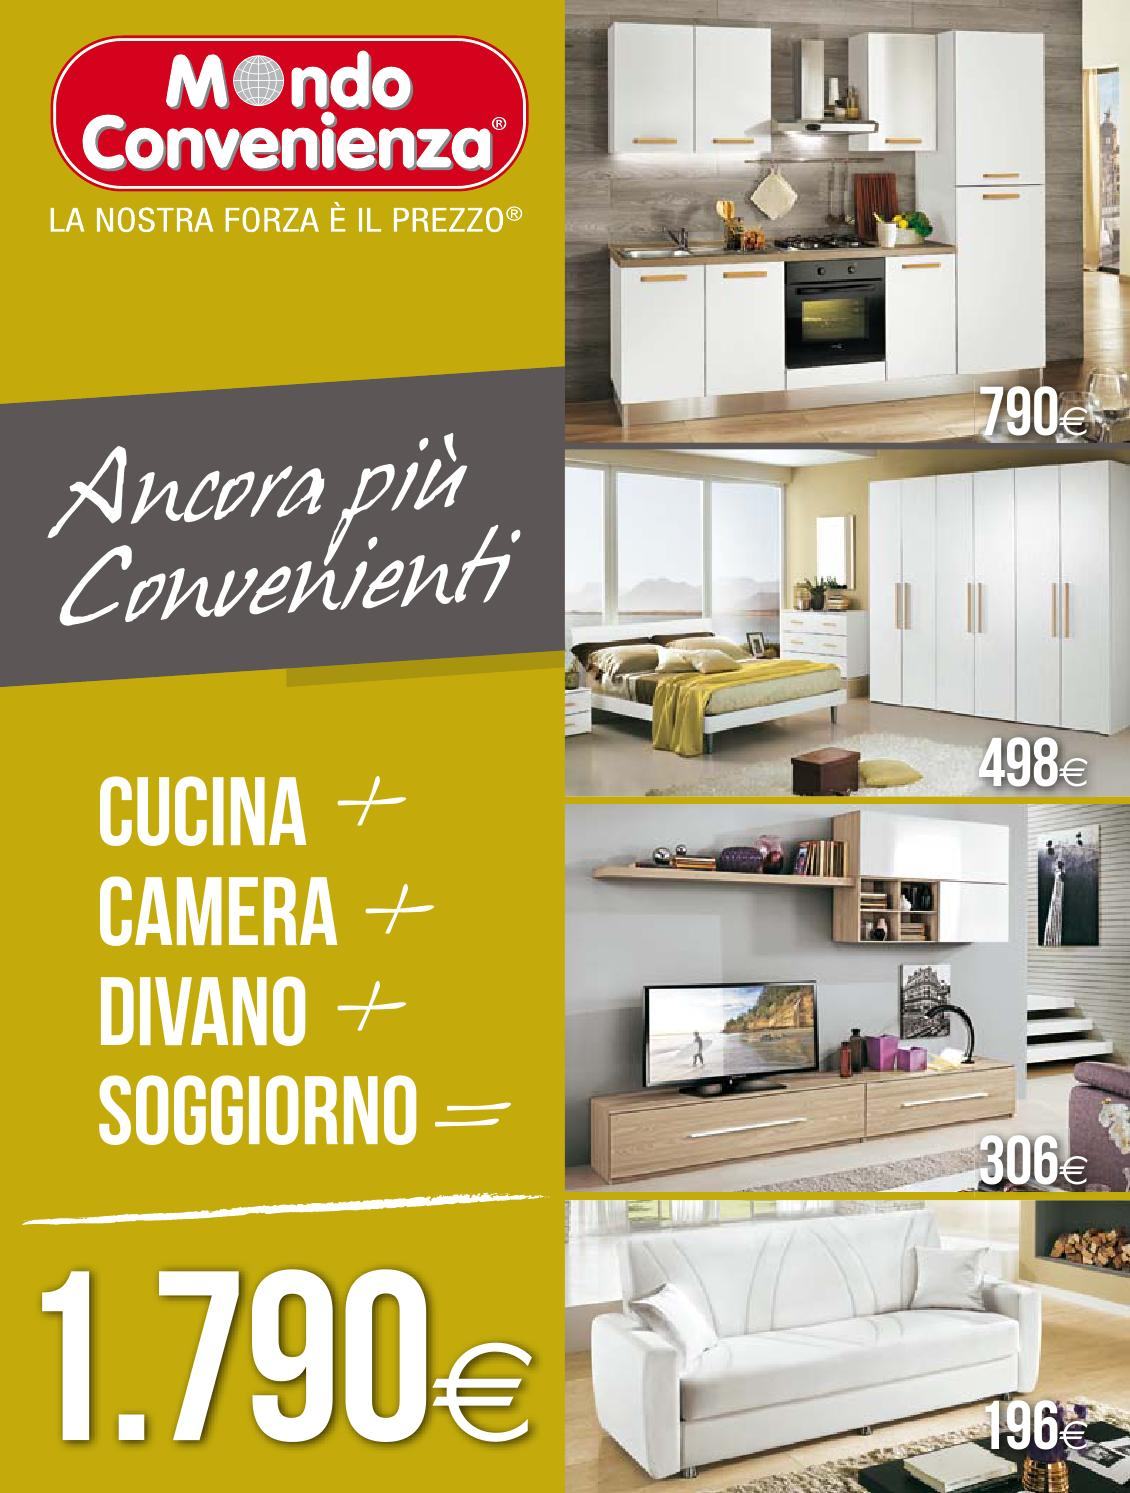 Mondo convenienza catalogo autunno2014 by mobilpro issuu for Mondo convenienza appendiabiti